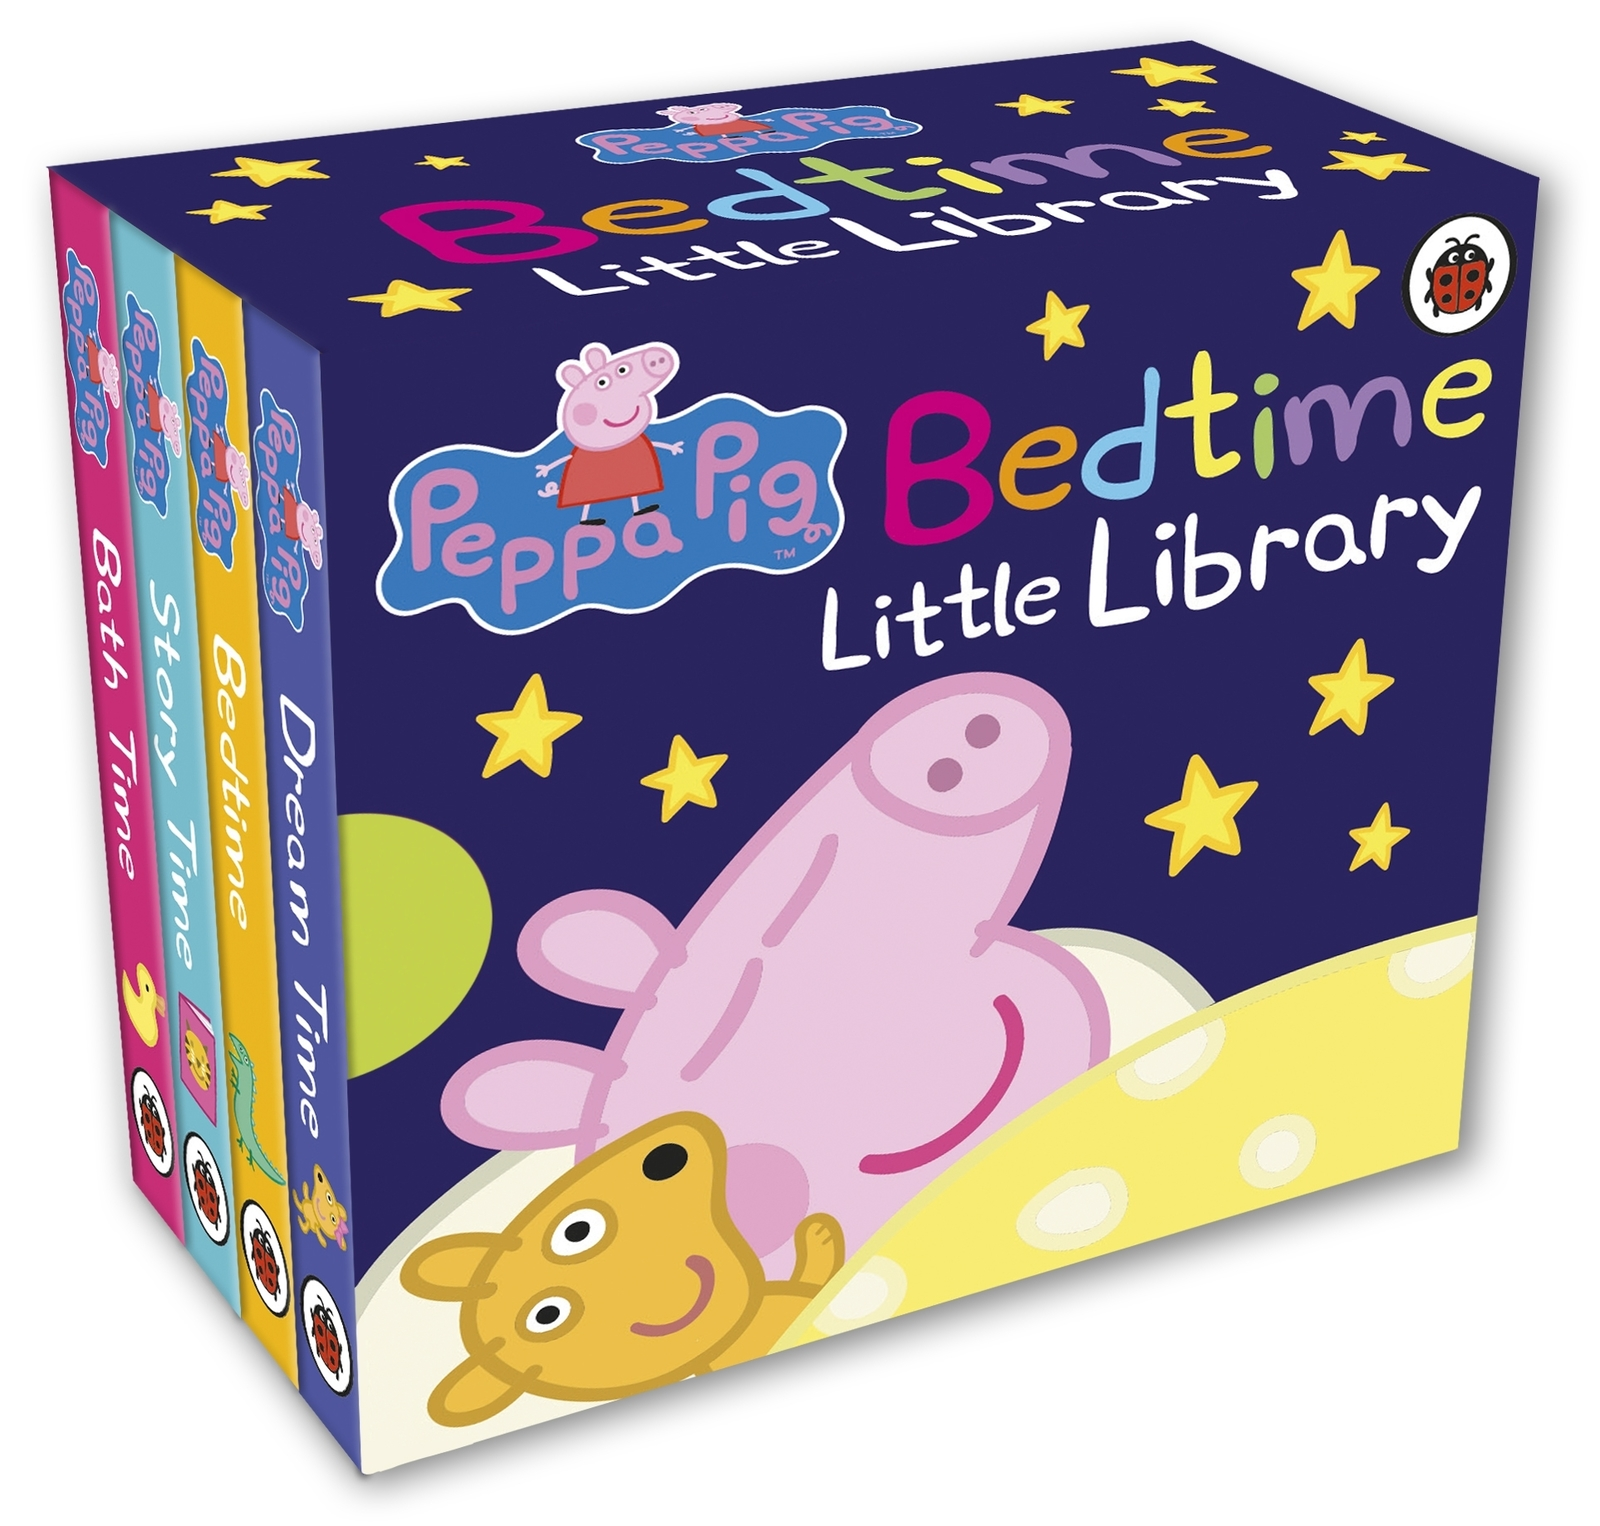 Peppa Pig: Bedtime Little Library by Peppa Pig image